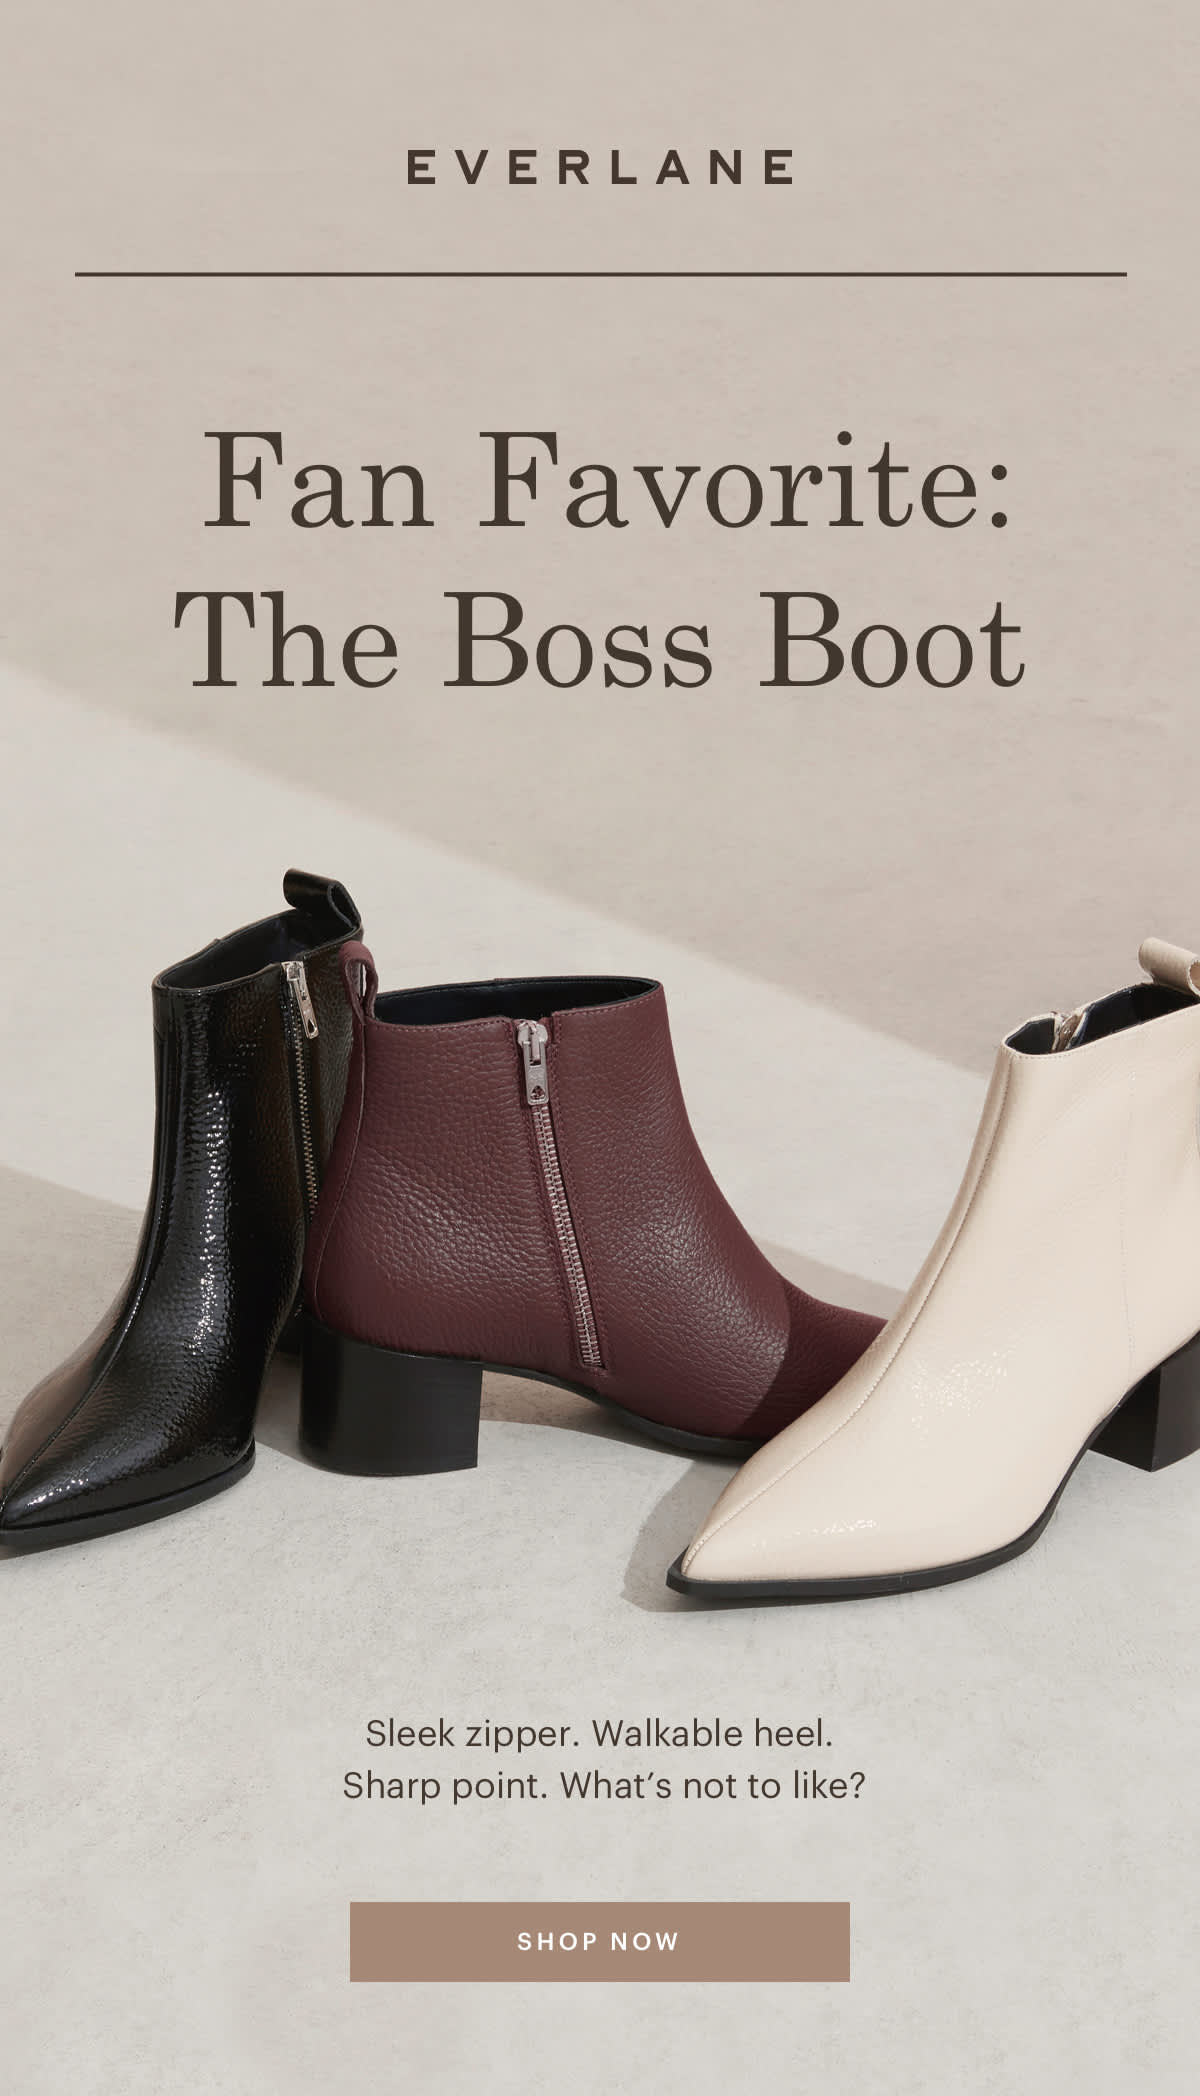 Fan Favorite: The Boss Boot